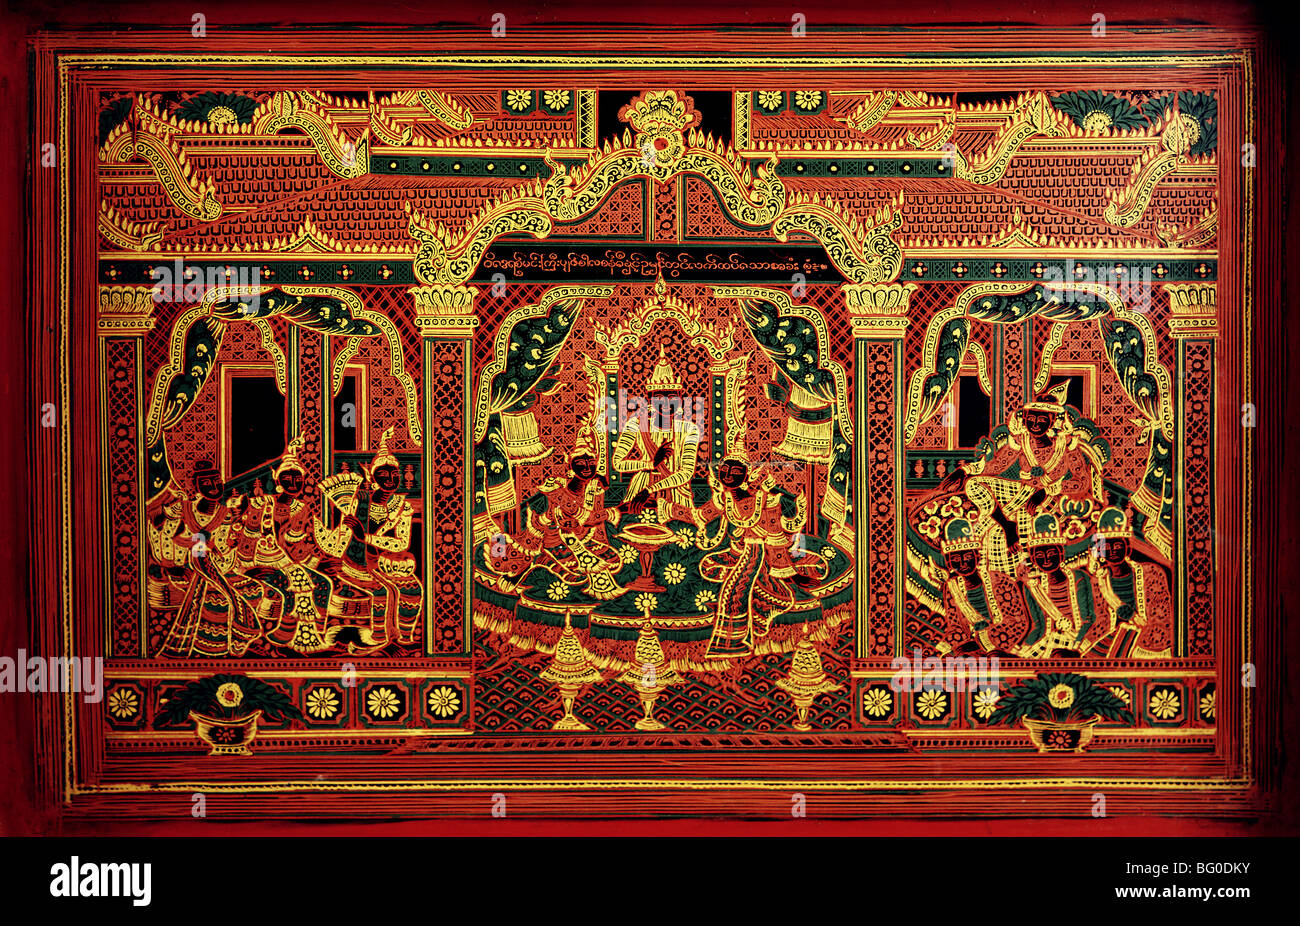 Detail of Lacquered Manuscript Chest from Myanmar (Burma), Asia - Stock Image